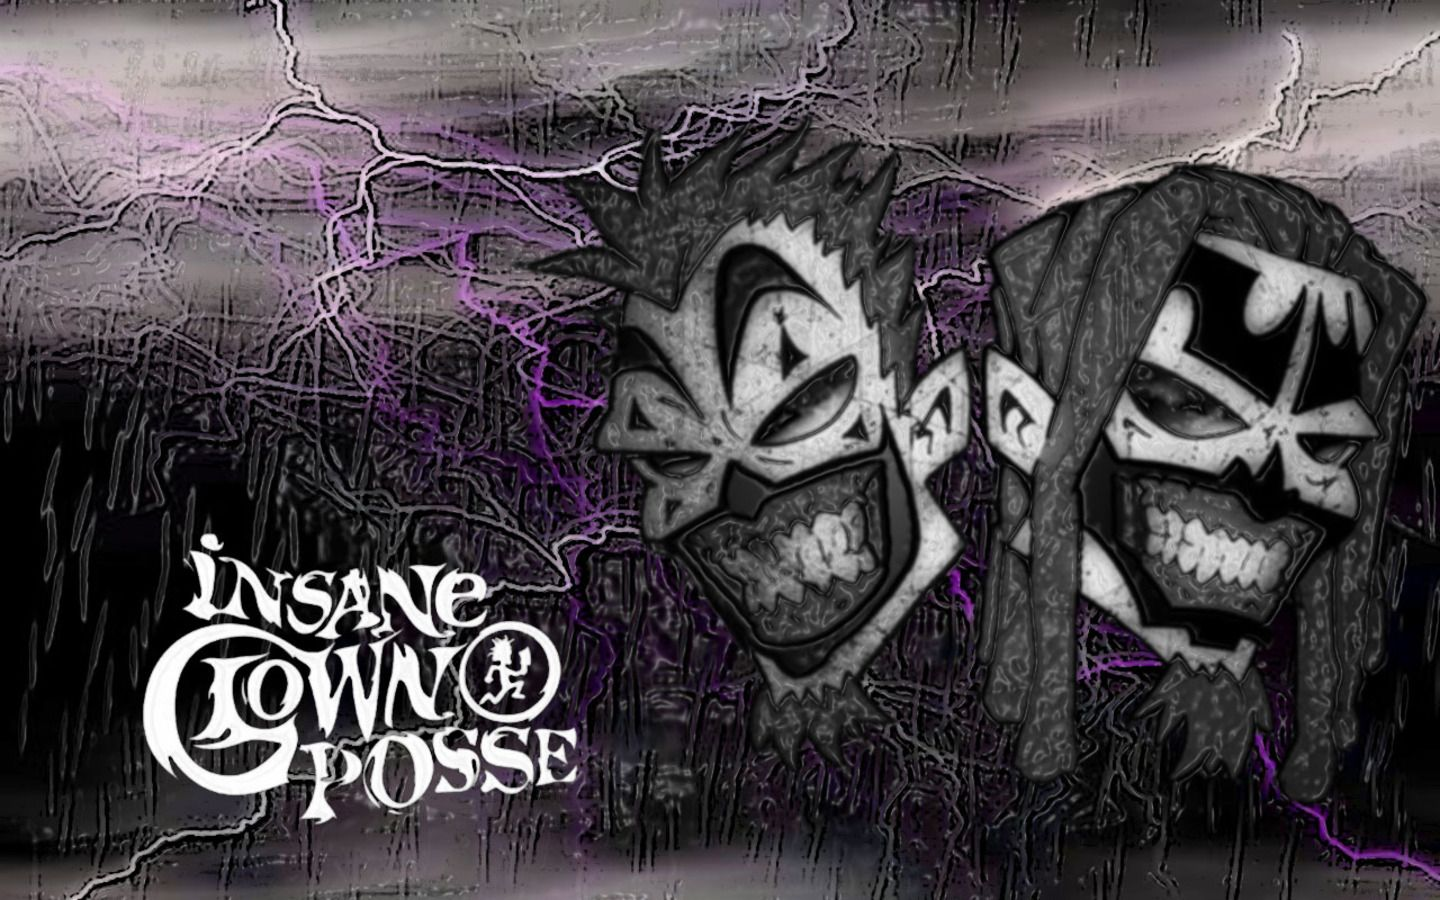 Insane Clown Posse Insane Clown Posse Posse Live Wallpapers